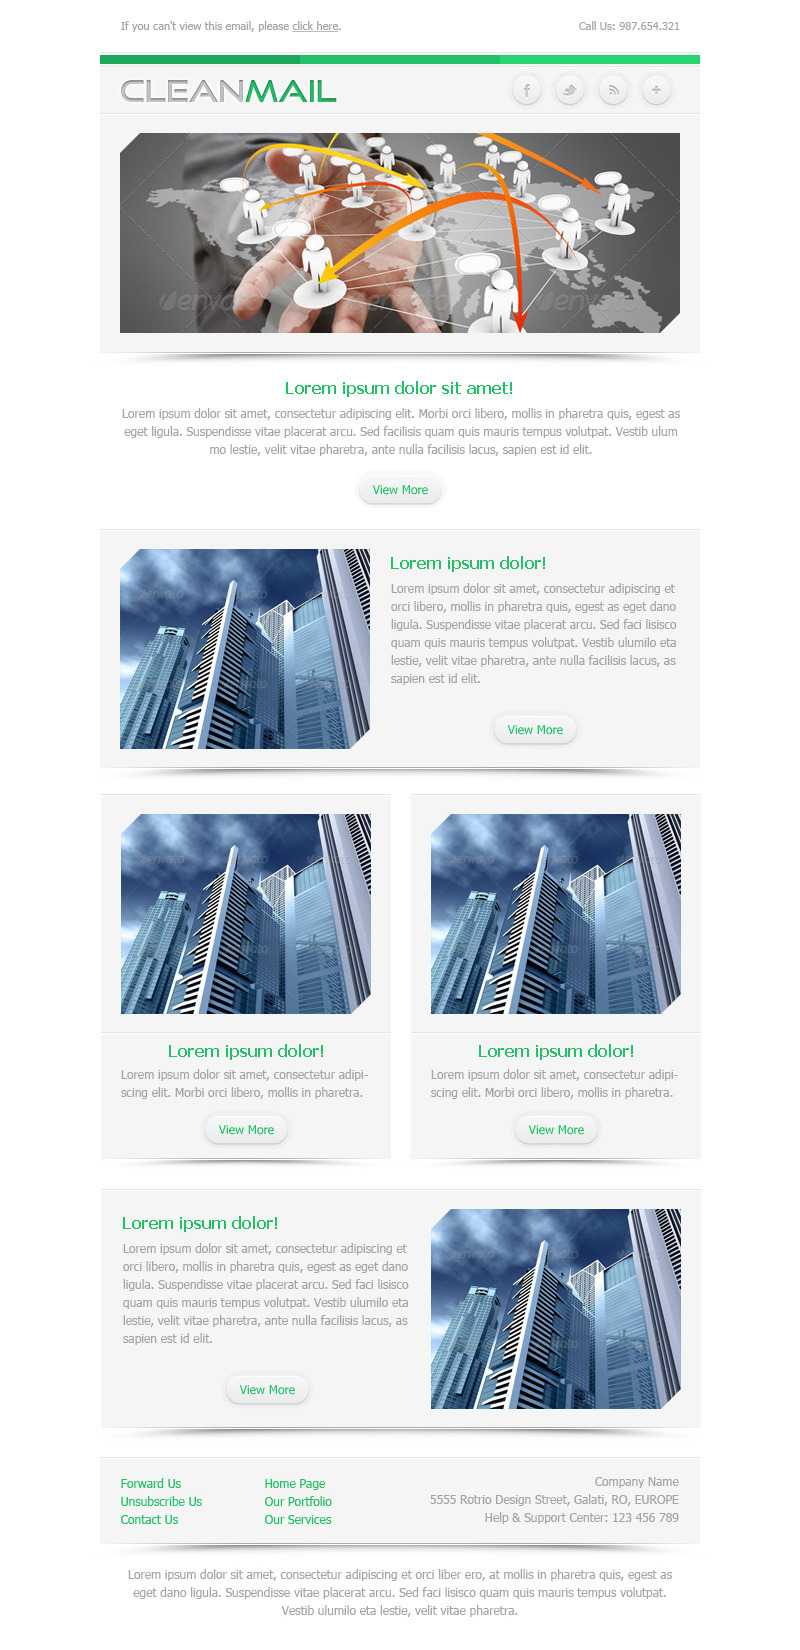 CleanMail - Newsletter & Marketing Email Template